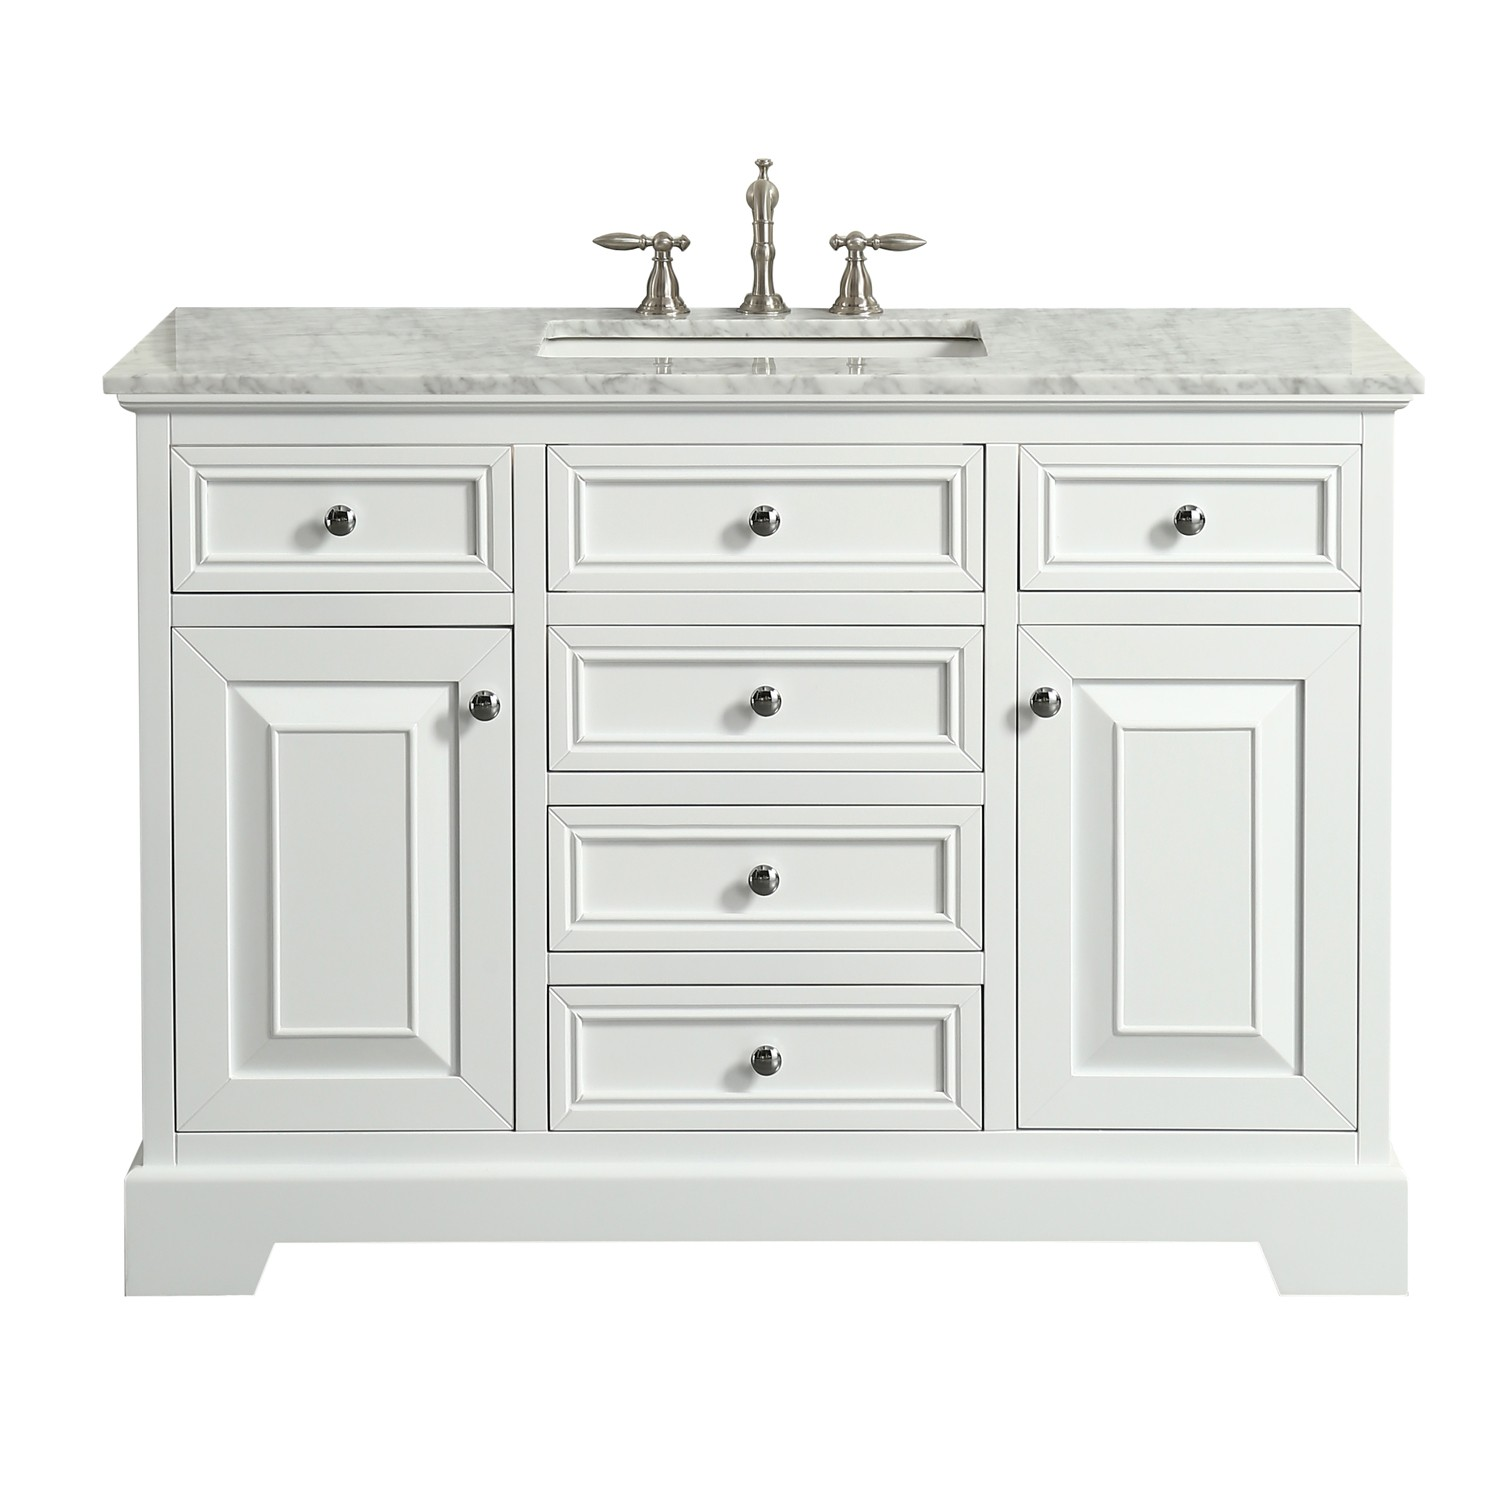 Eviva Monroe 48 In White Bathroom Vanity With White Carrara Marble Top White Undermount Porcelain Sink